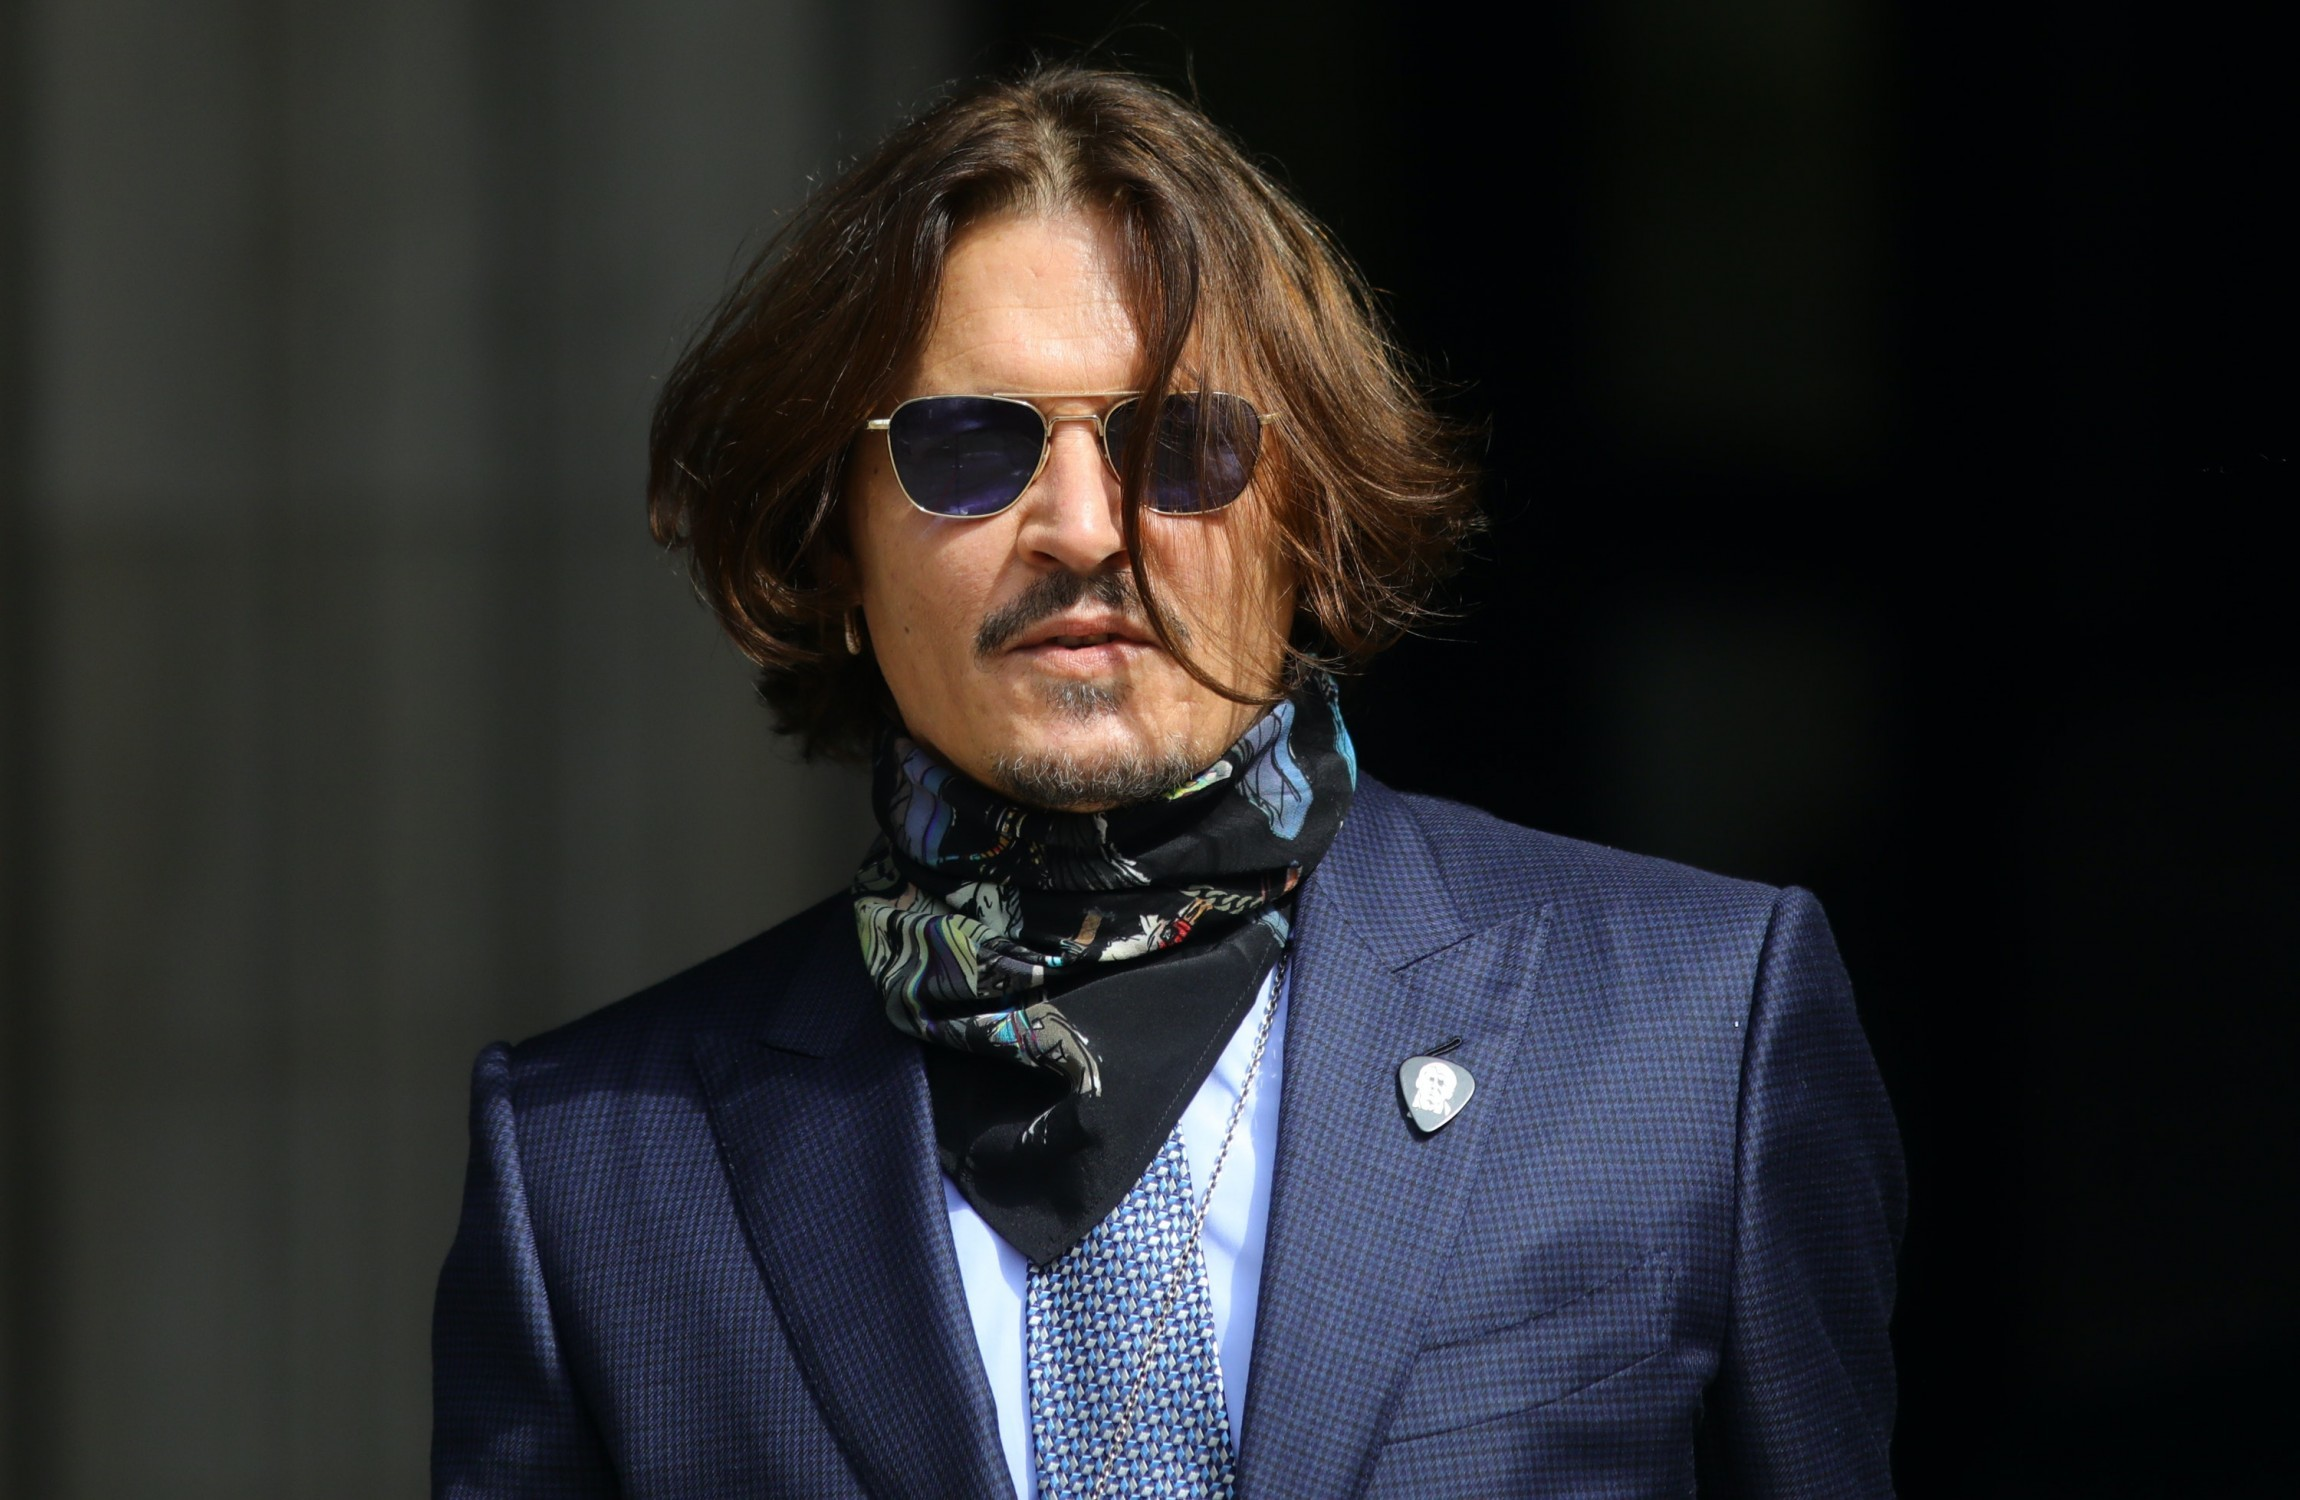 Mads Mikkelsen confirmed to replace Johnny Depp in Fantastic Beasts